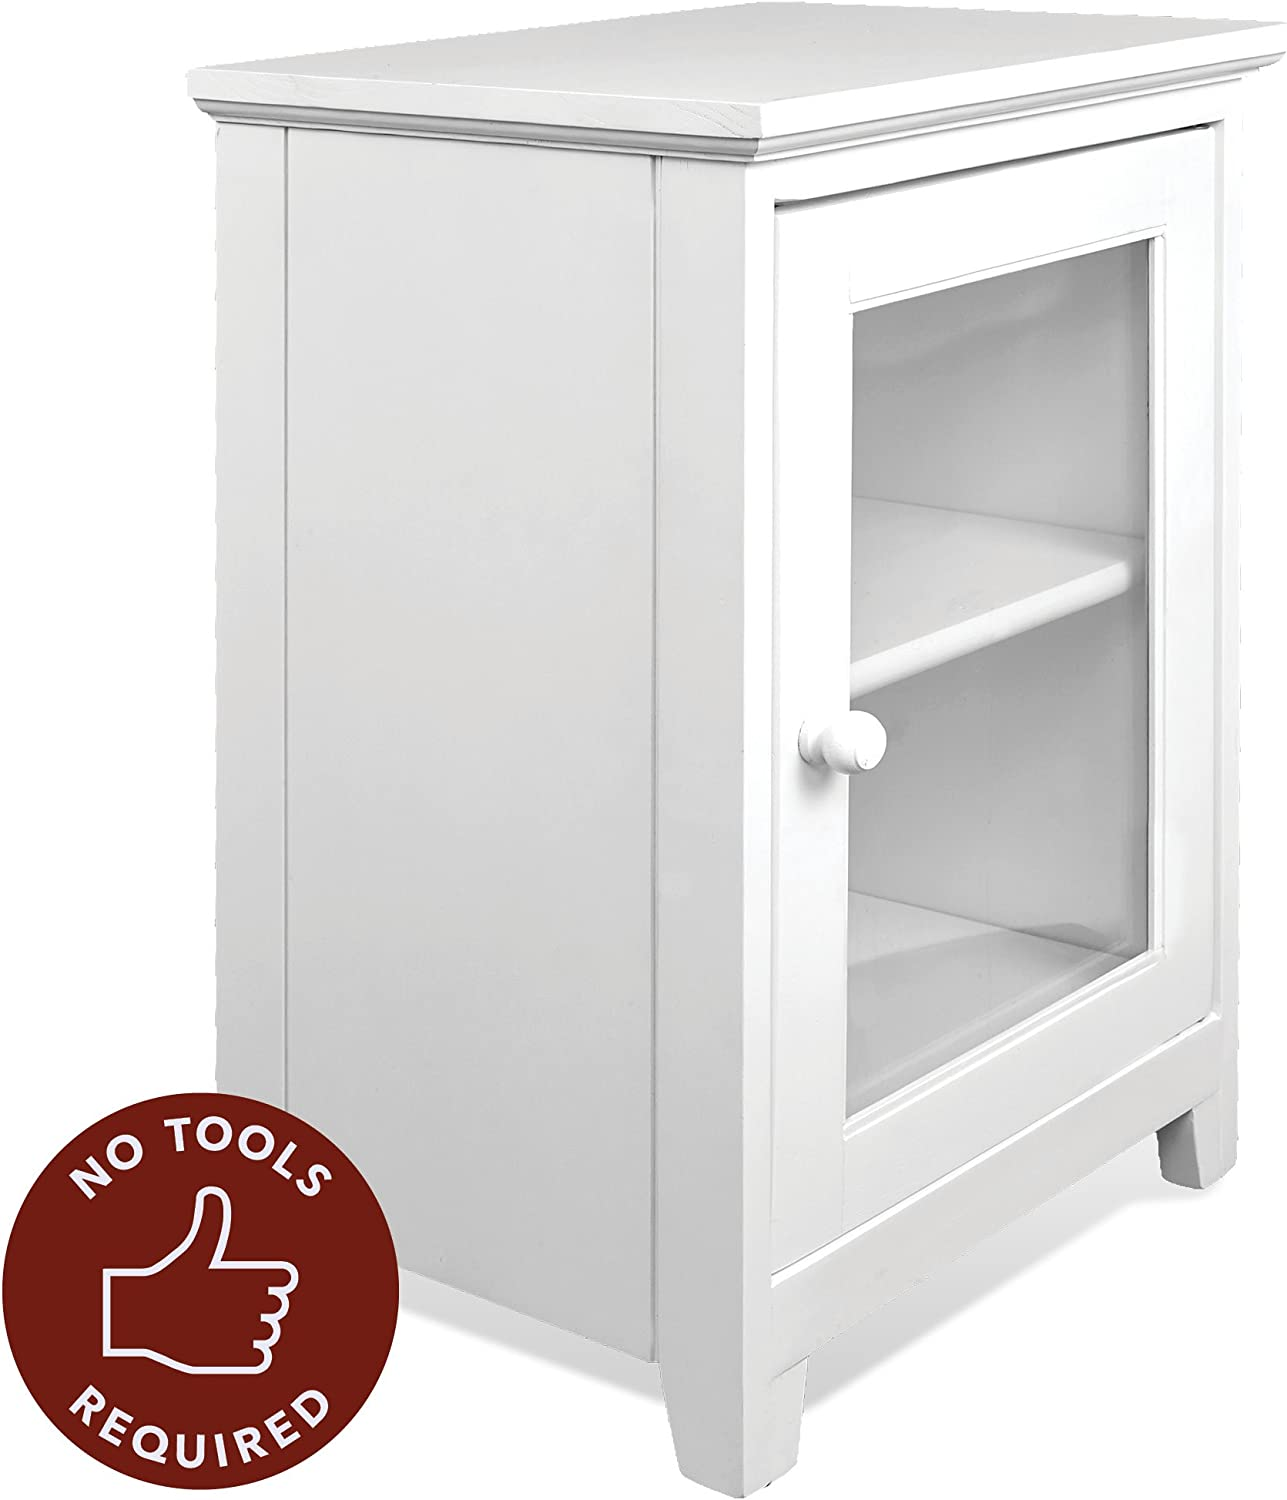 Stony-Edge White Night Stand Easiest Assembly, No Tools Required – Premium Two Shelf Wooden Bedside Table or End Table with Glass Door – Heavy Duty Elegant Accent Furniture